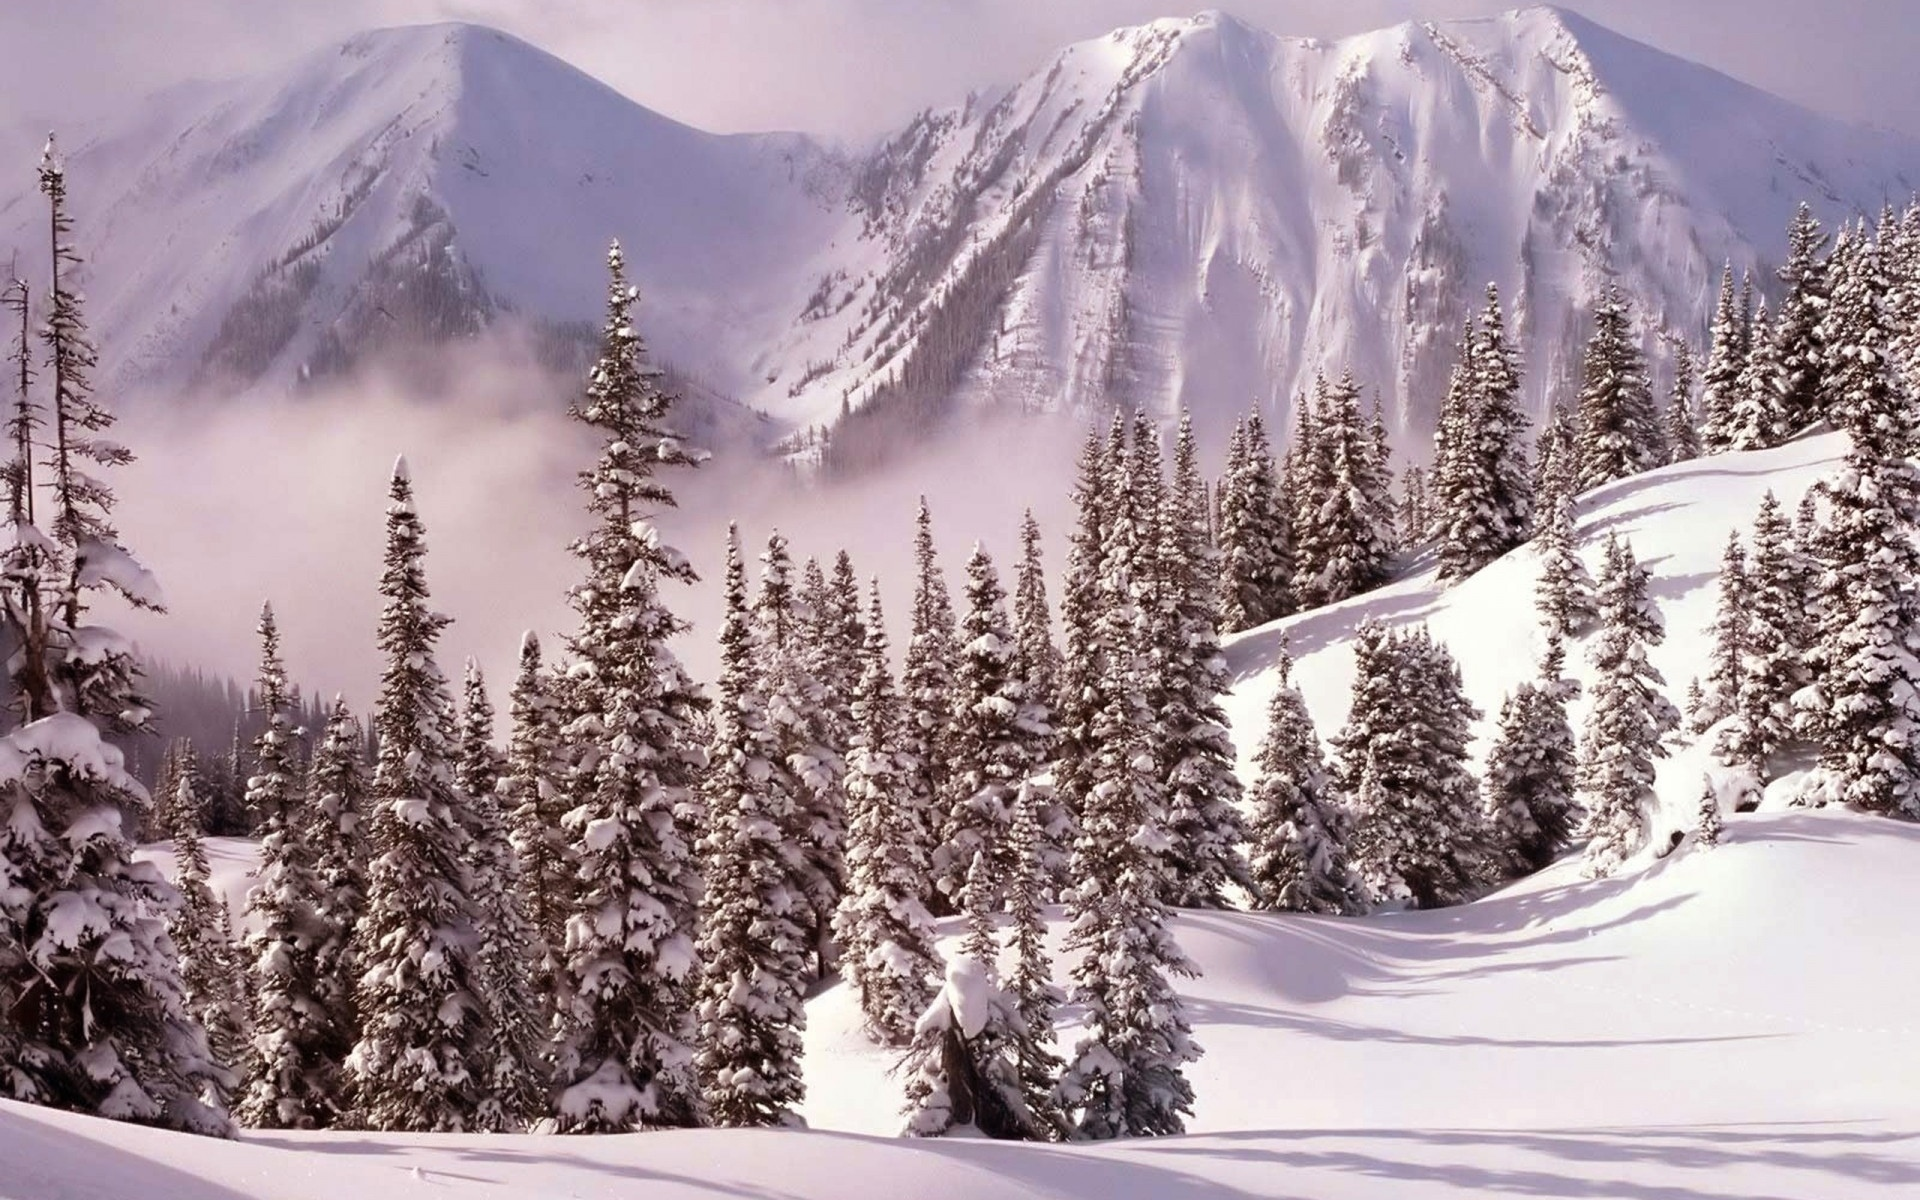 nature landscapes mountains winter snow seasons sky clouds cold trees sunlight fog mist haze scenic architecture buildings stone rock houses roof